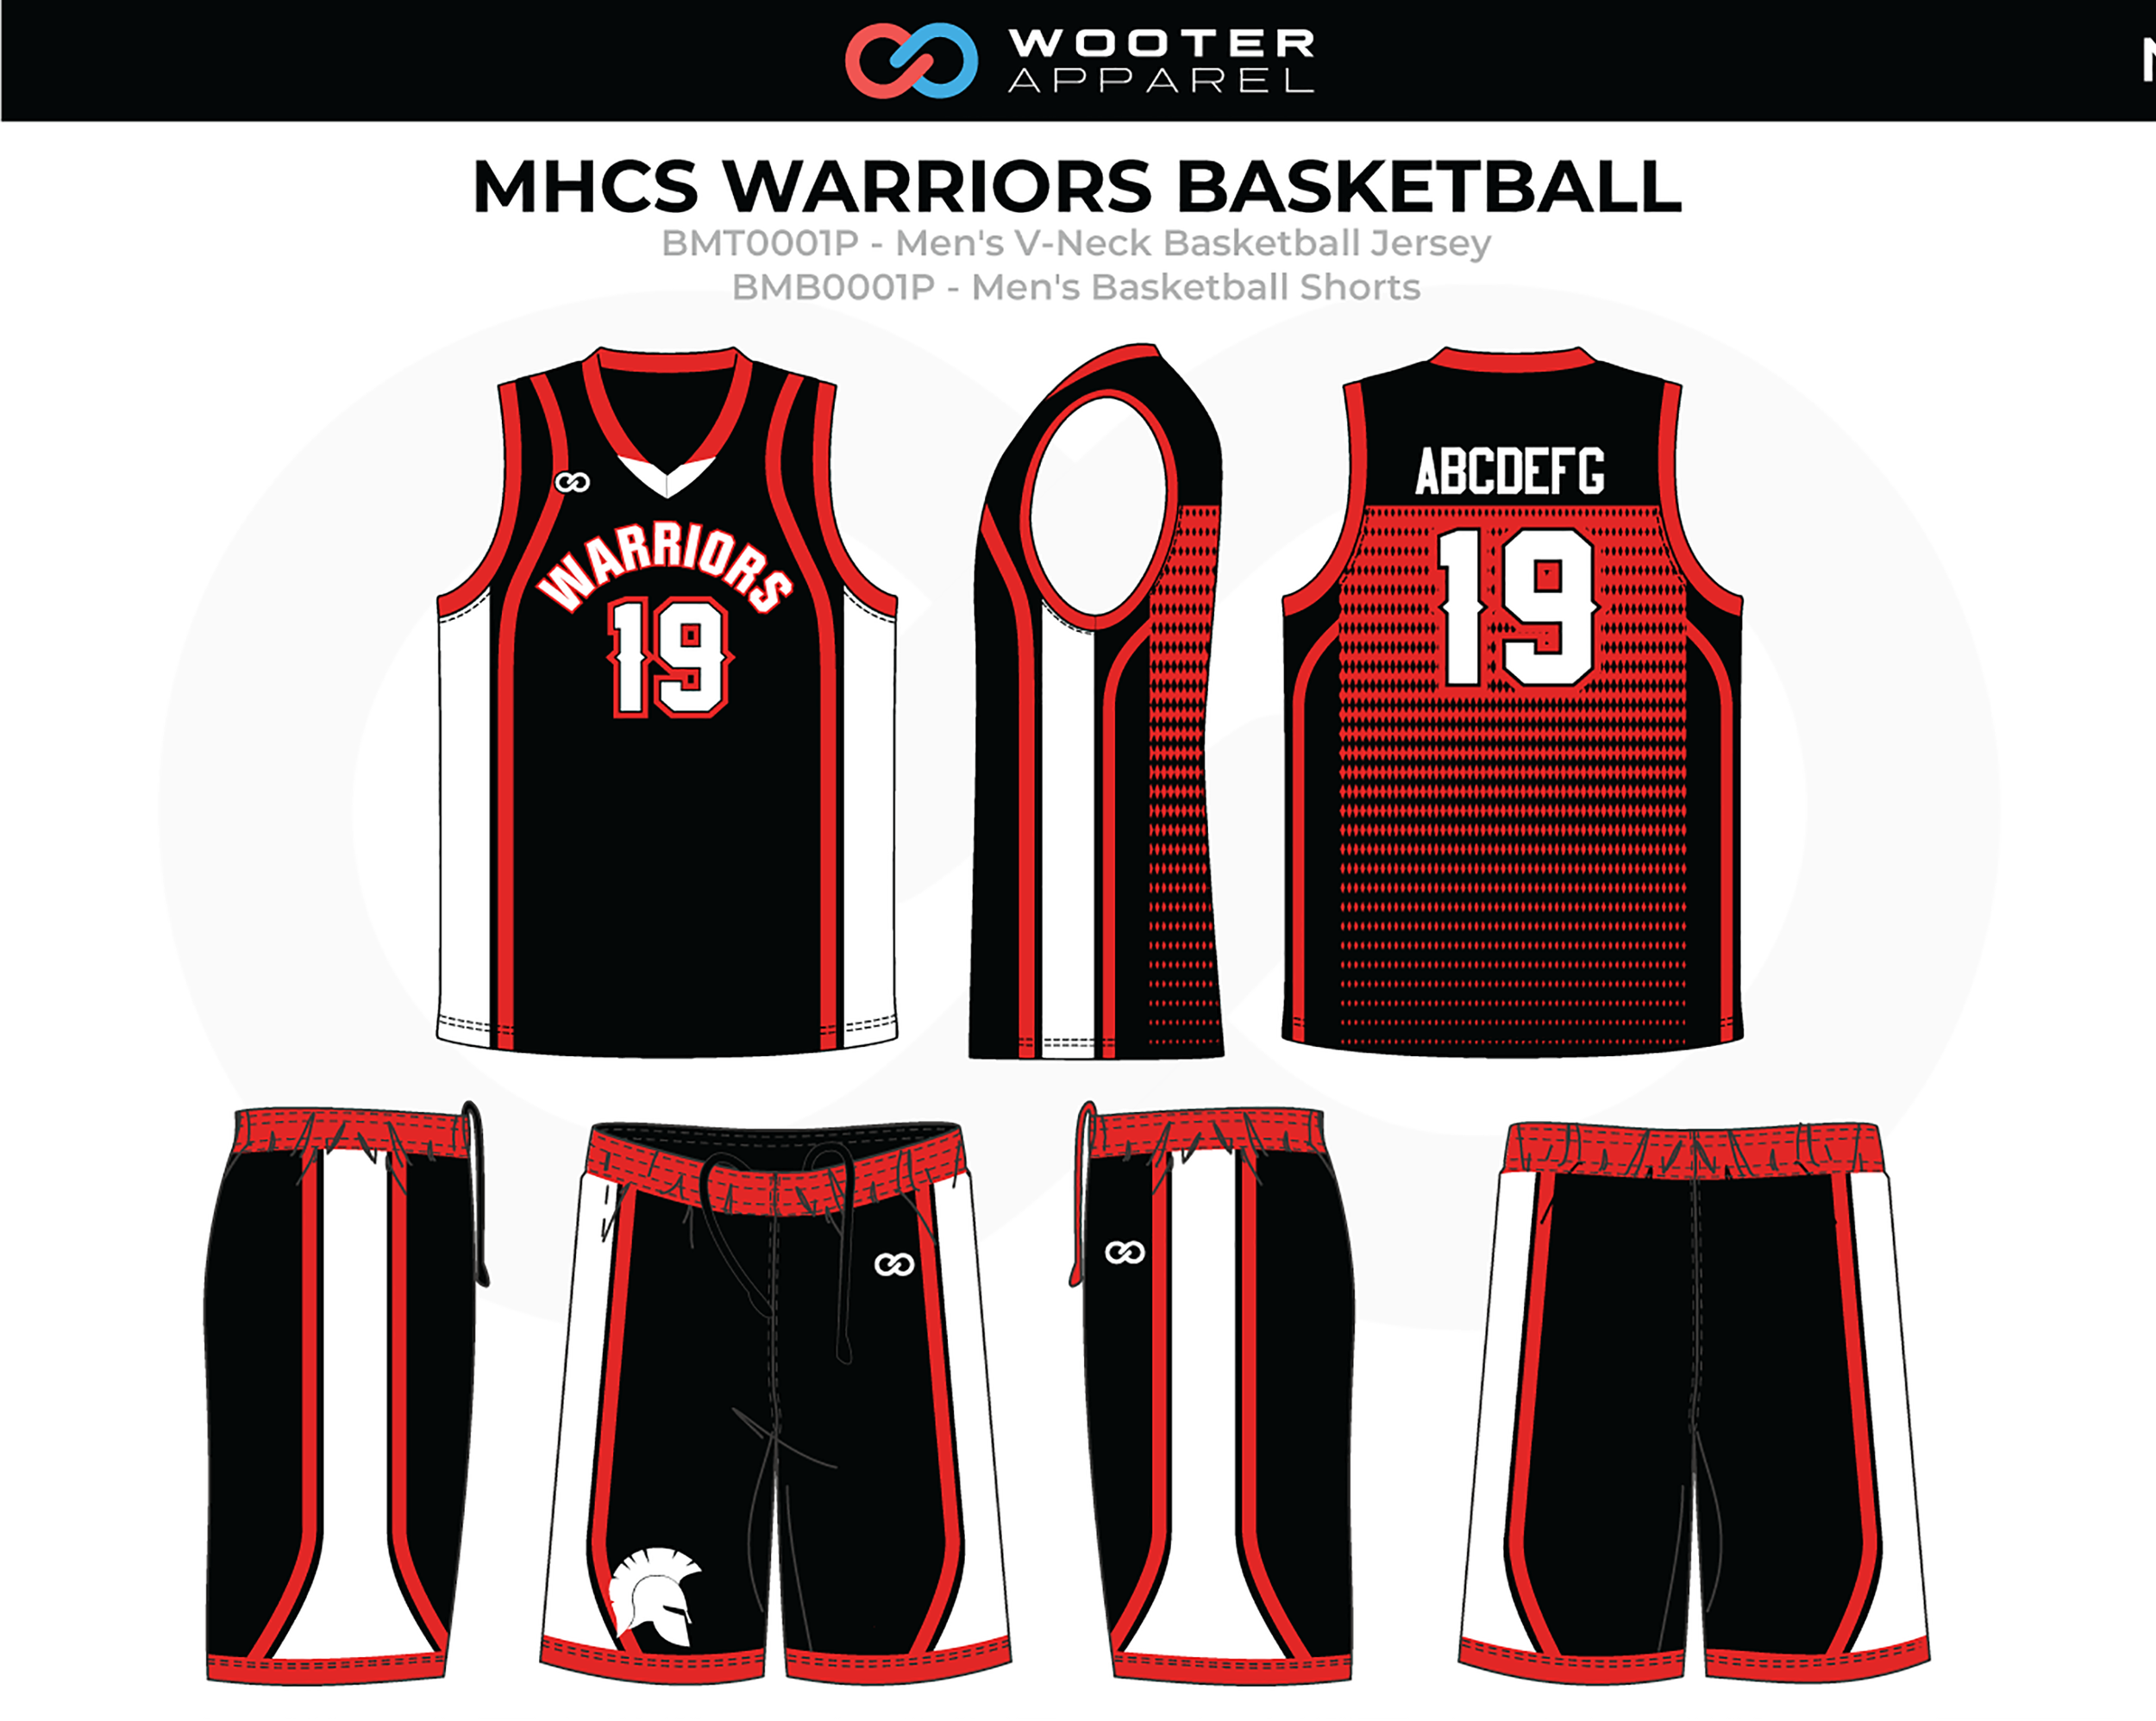 MHCS WARRIORS Red Black White Men's V-Neck Basketball Uniform, Jersey and Shorts